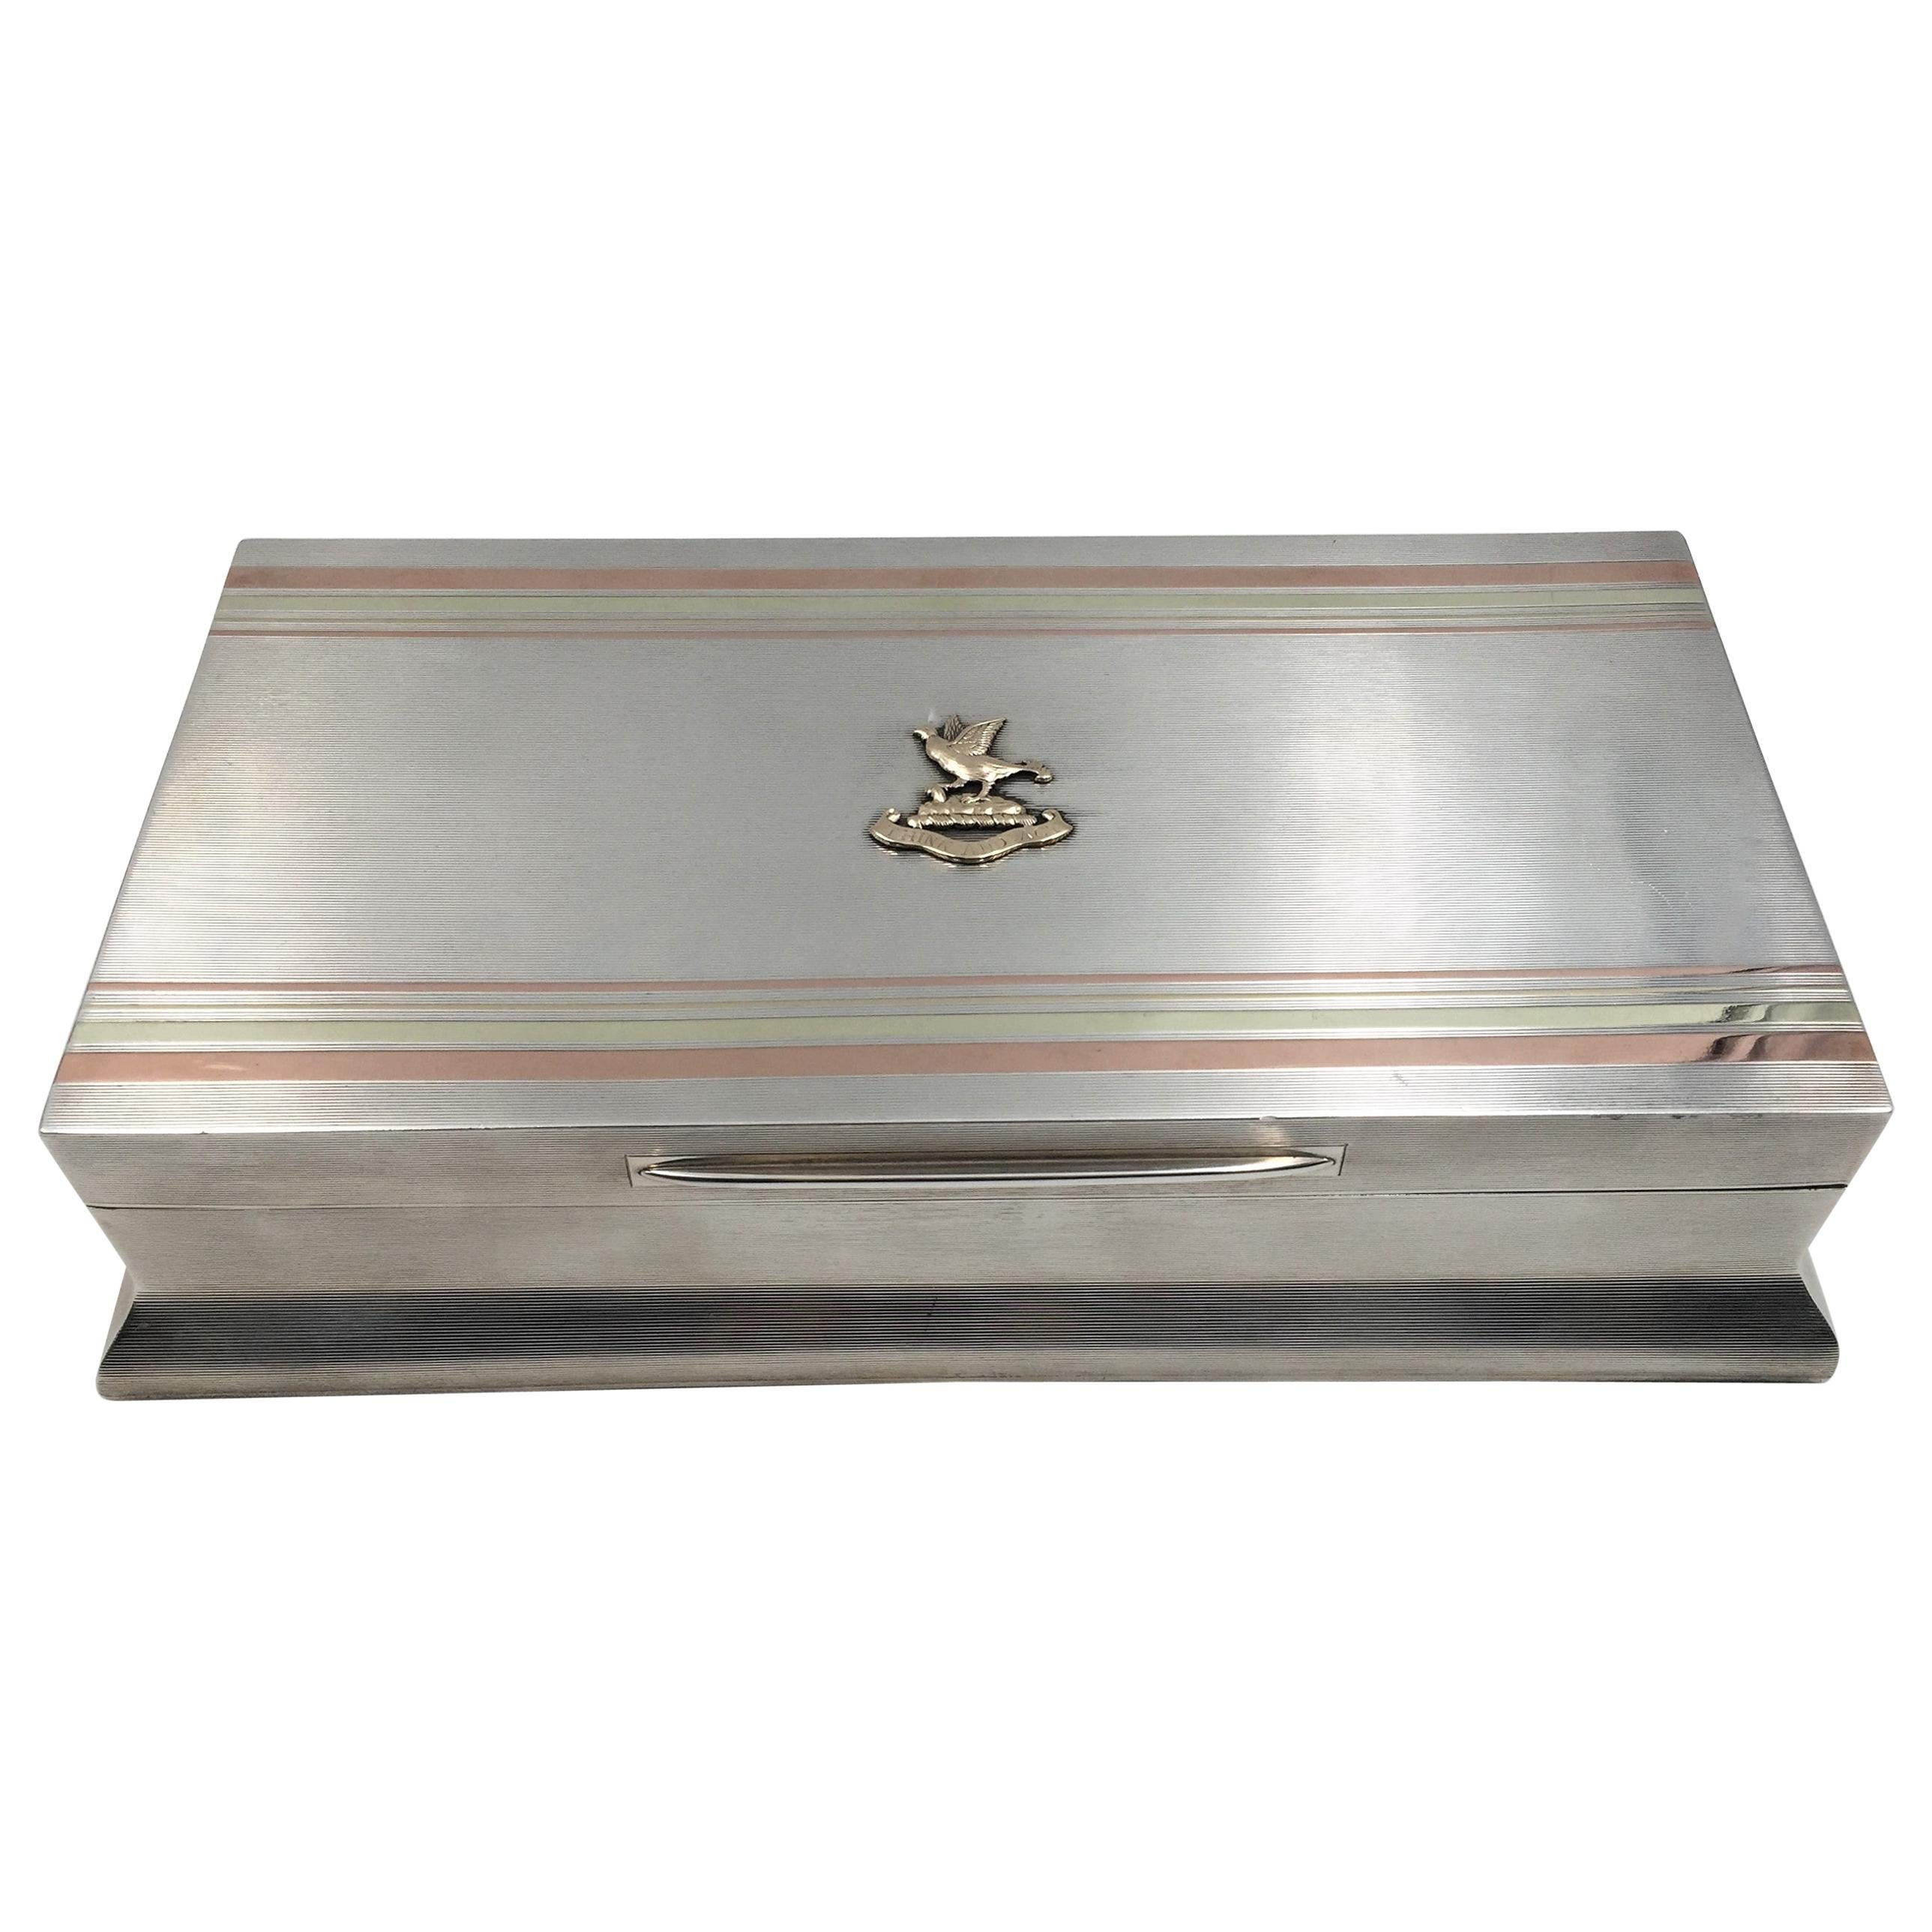 Sterling Silver Cigar Box by William F. Wright in Art Deco Style